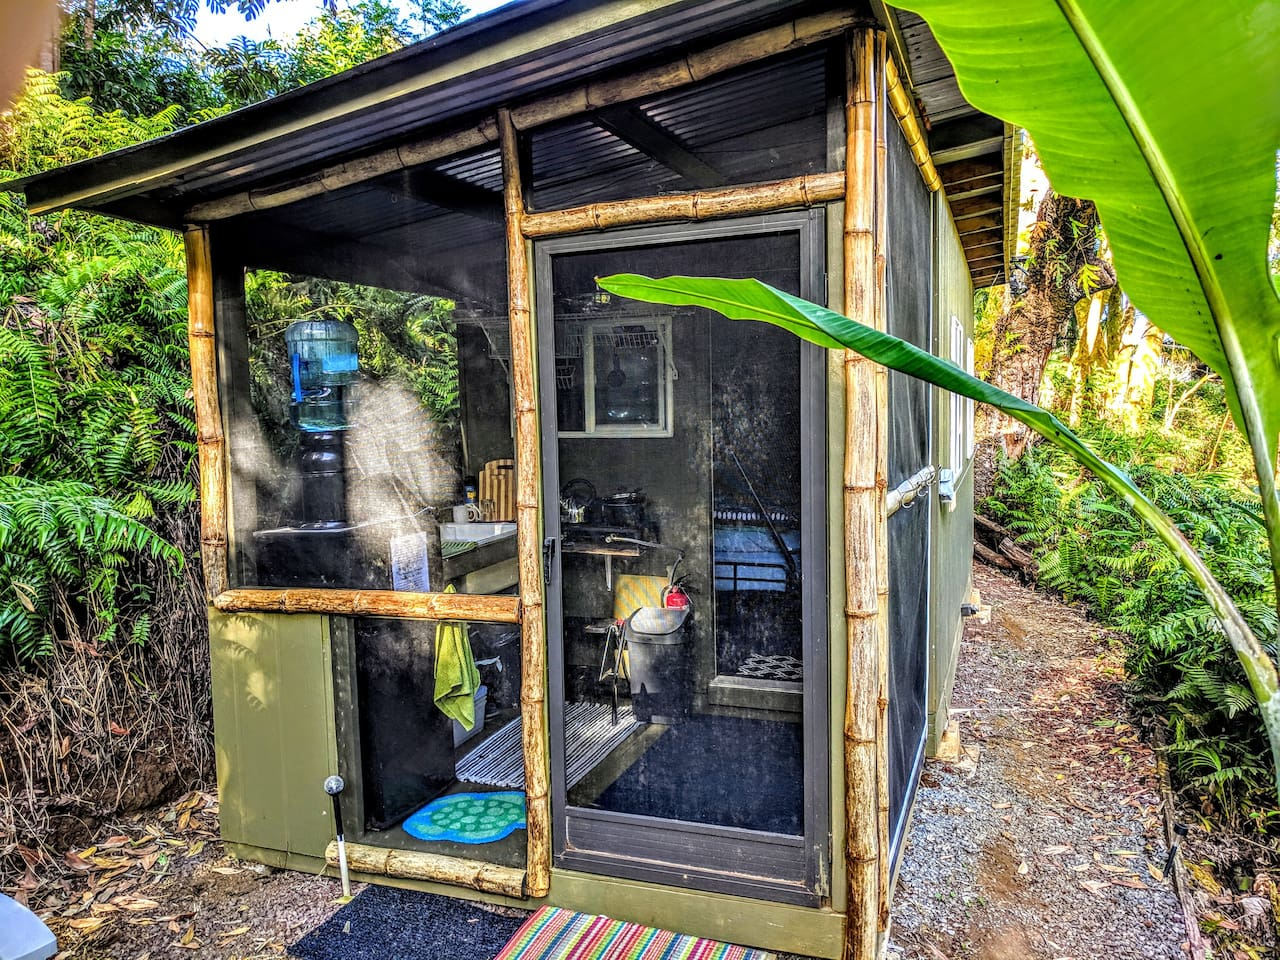 Listen to the peaceful sounds of the river and rainforest in this tiny cabin